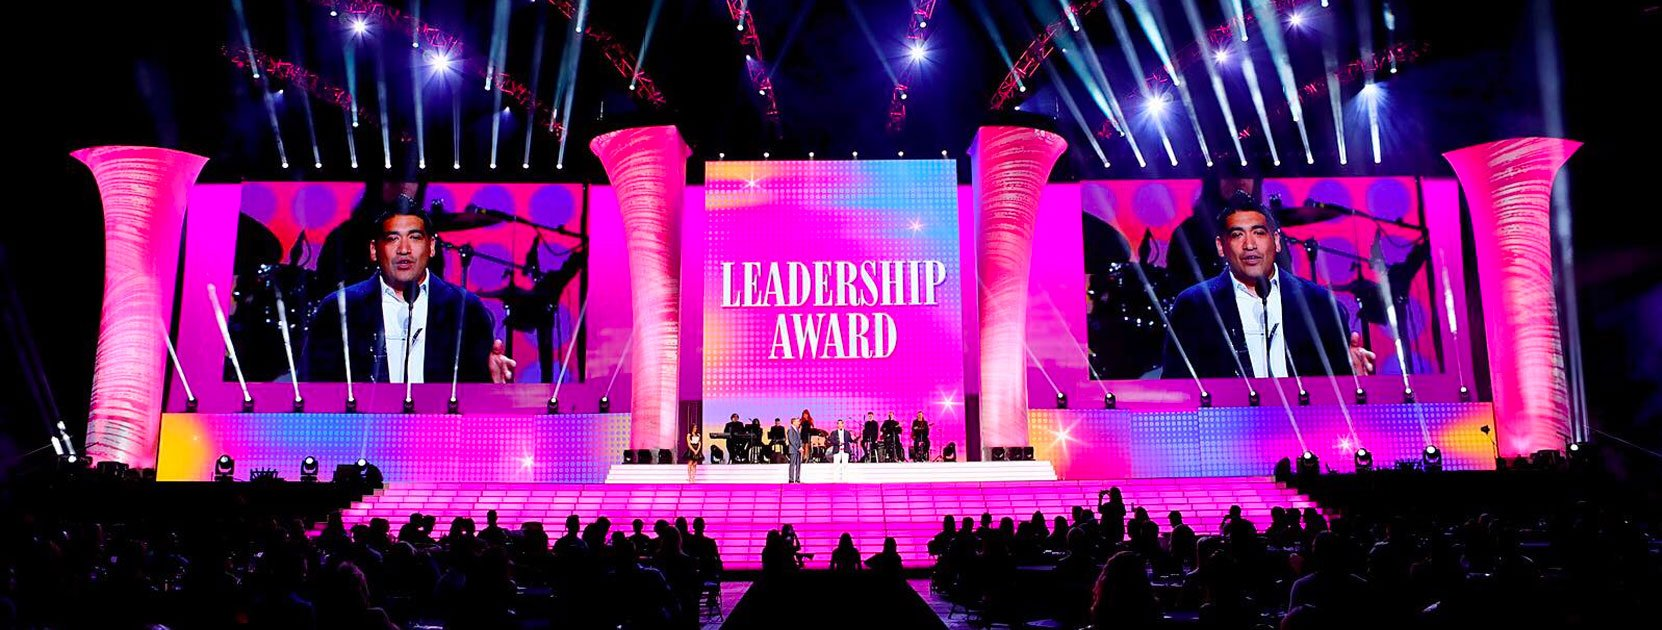 Beachbody Leadership Award